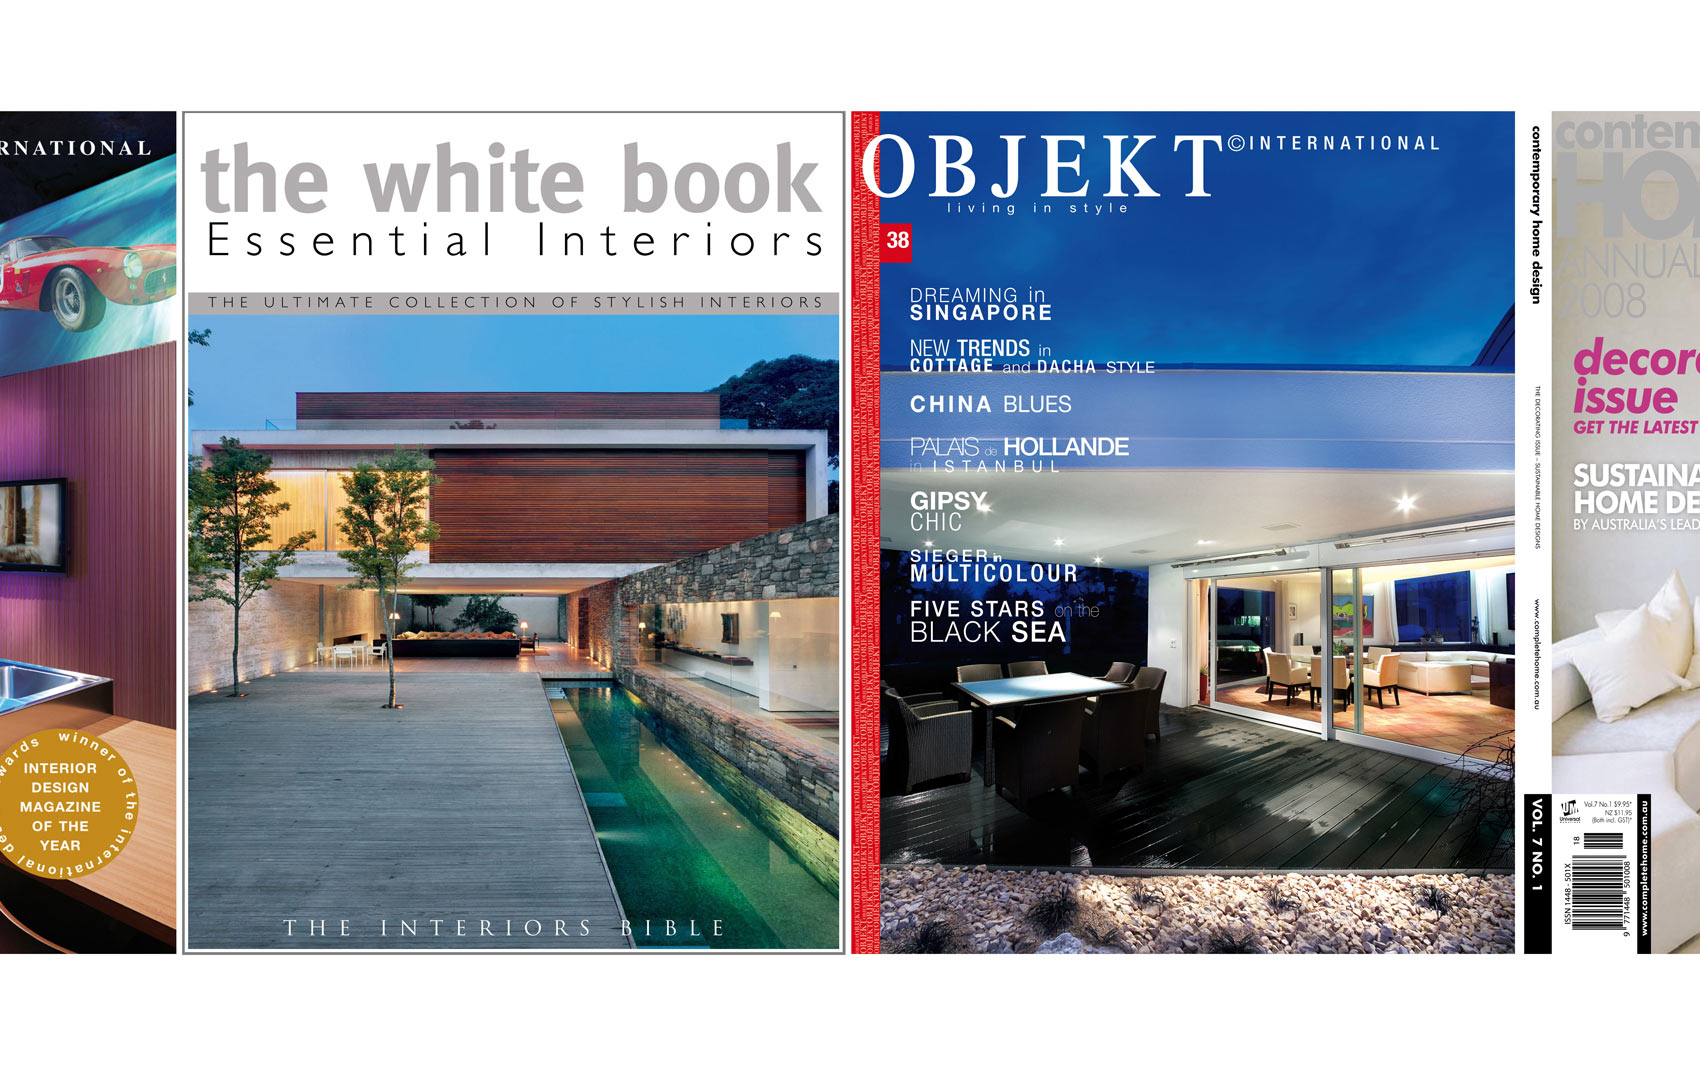 Featured in The White Book Essential Interiors